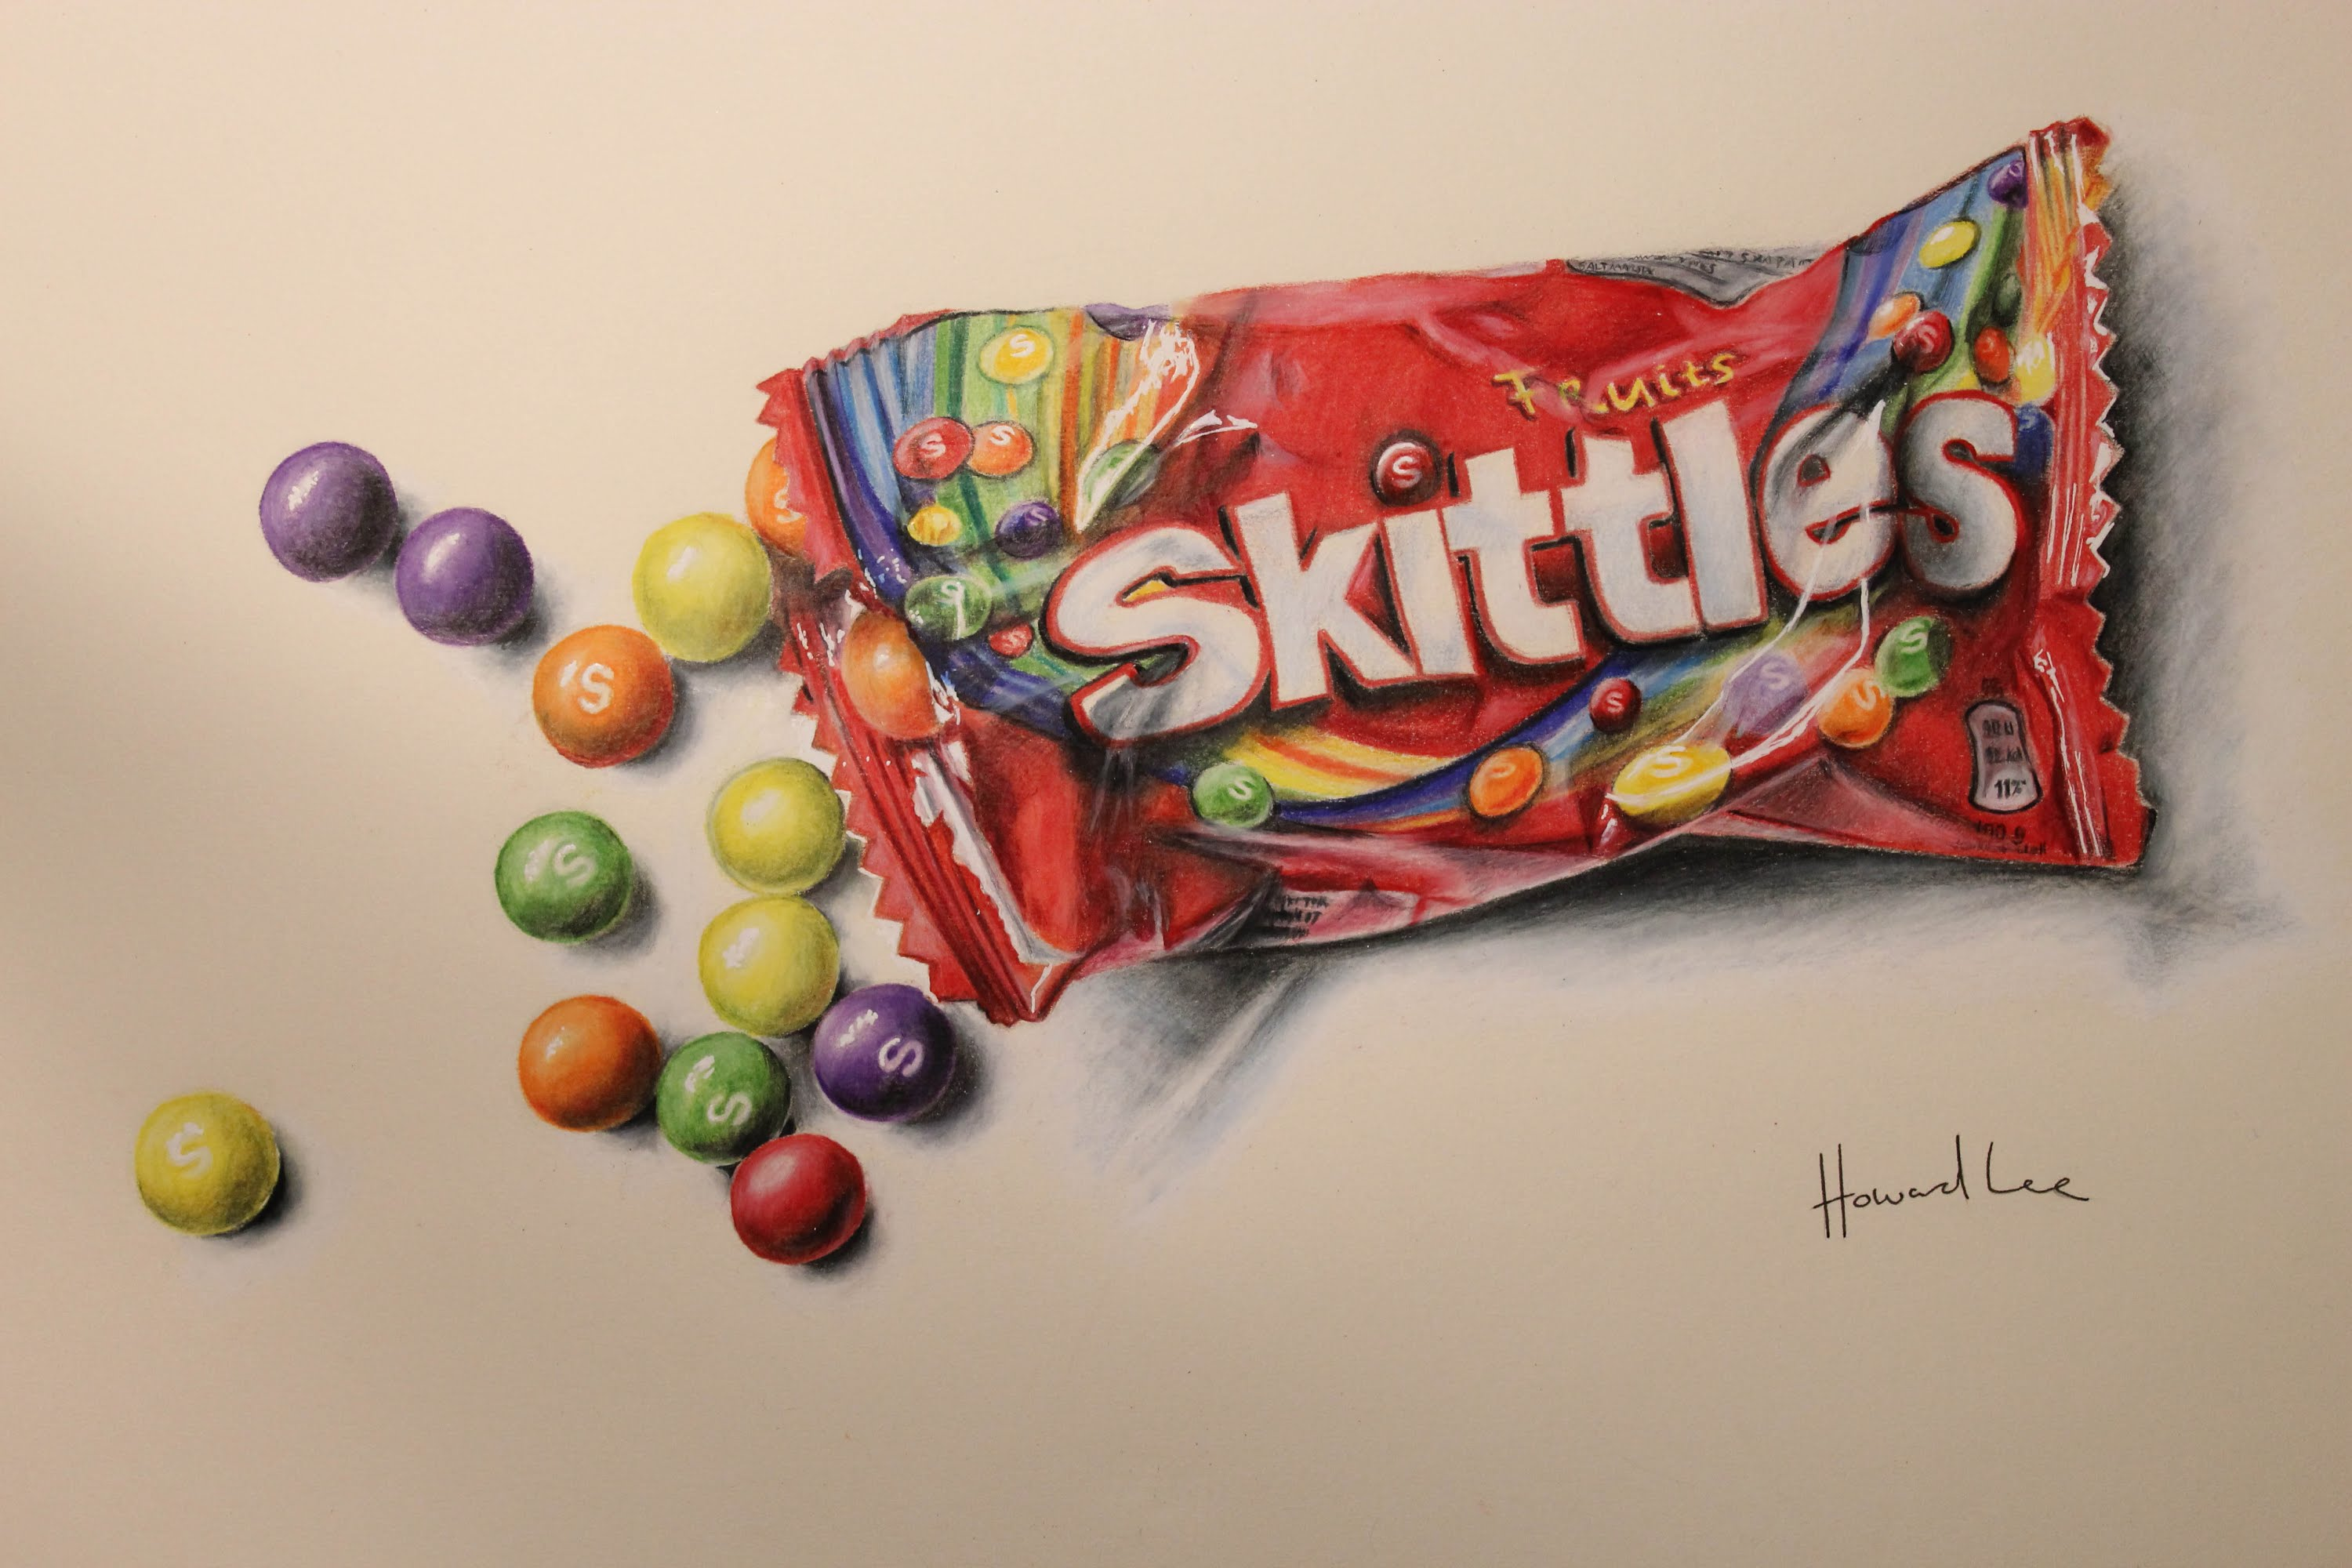 Drawn sweets realistic Time Drawing Lapse: Skittles Time